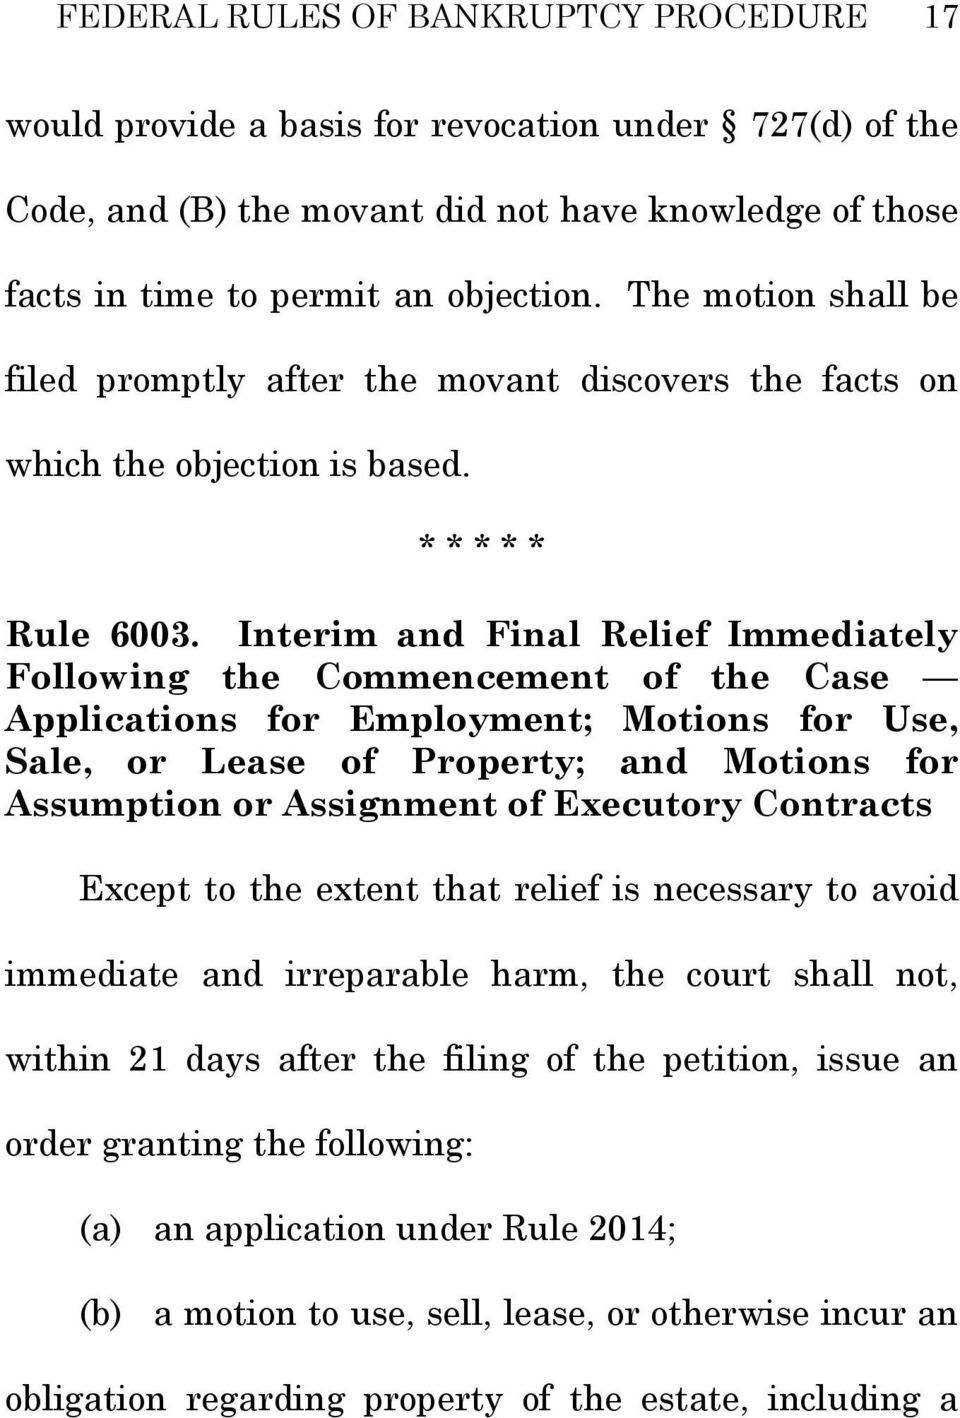 Interim and Final Relief Immediately Following the Commencement of the Case Applications for Employment; Motions for Use, Sale, or Lease of Property; and Motions for Assumption or Assignment of